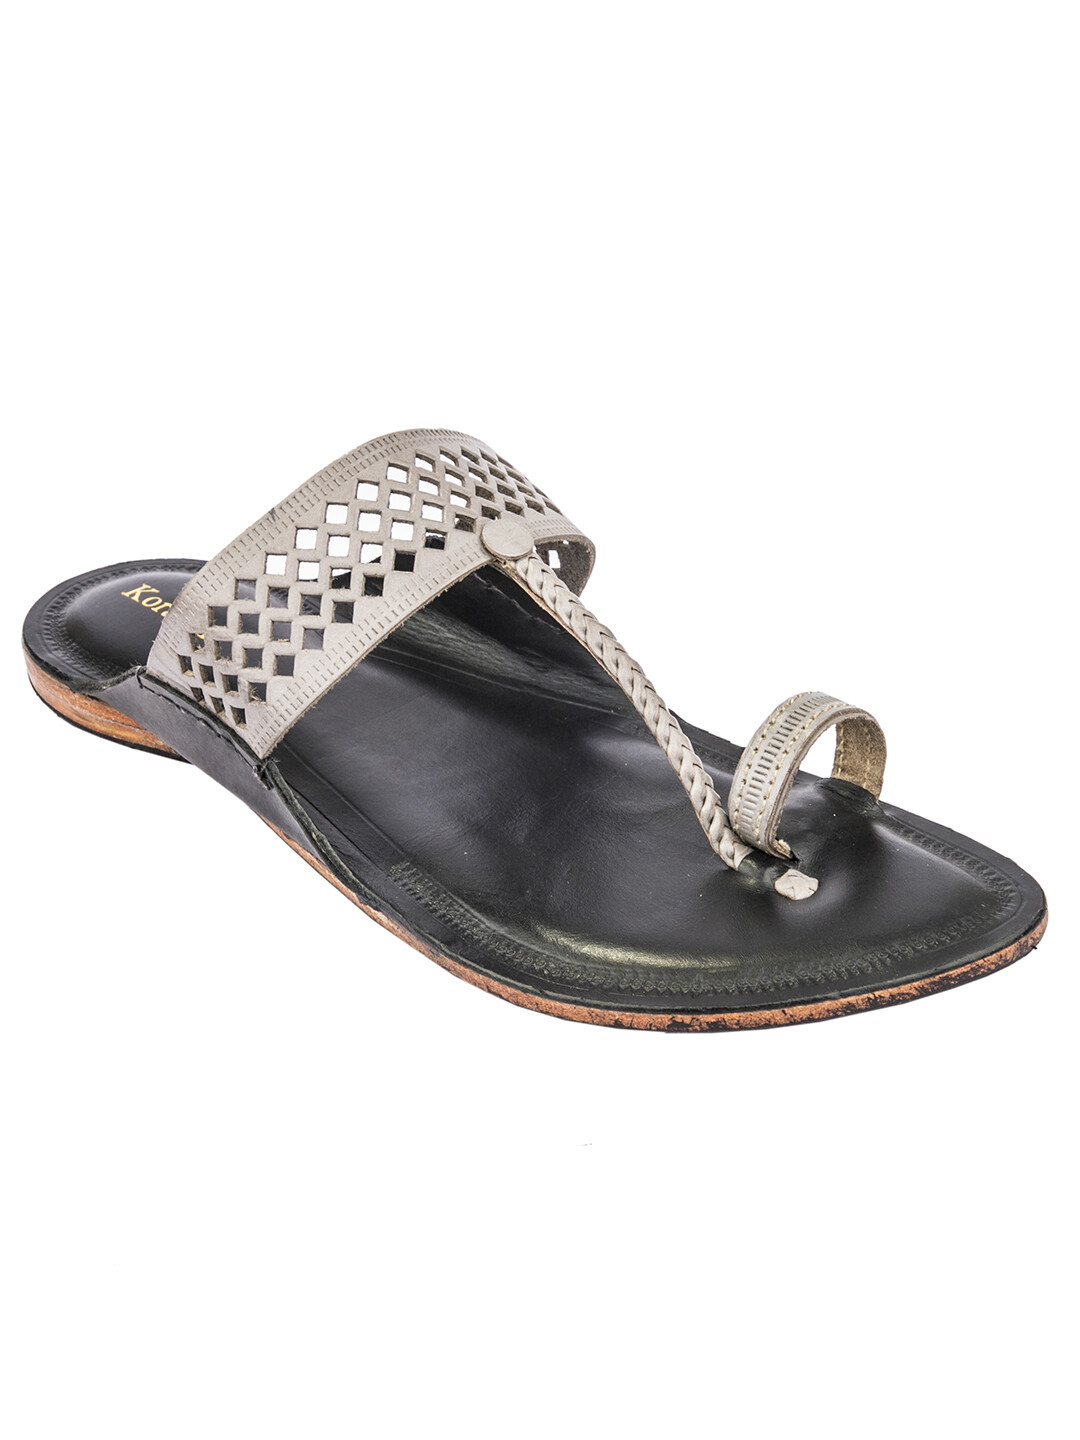 KORAKARI Grey Color Upper and Black Base Pure Leather Reliable Kolhapuri Chappal for Men